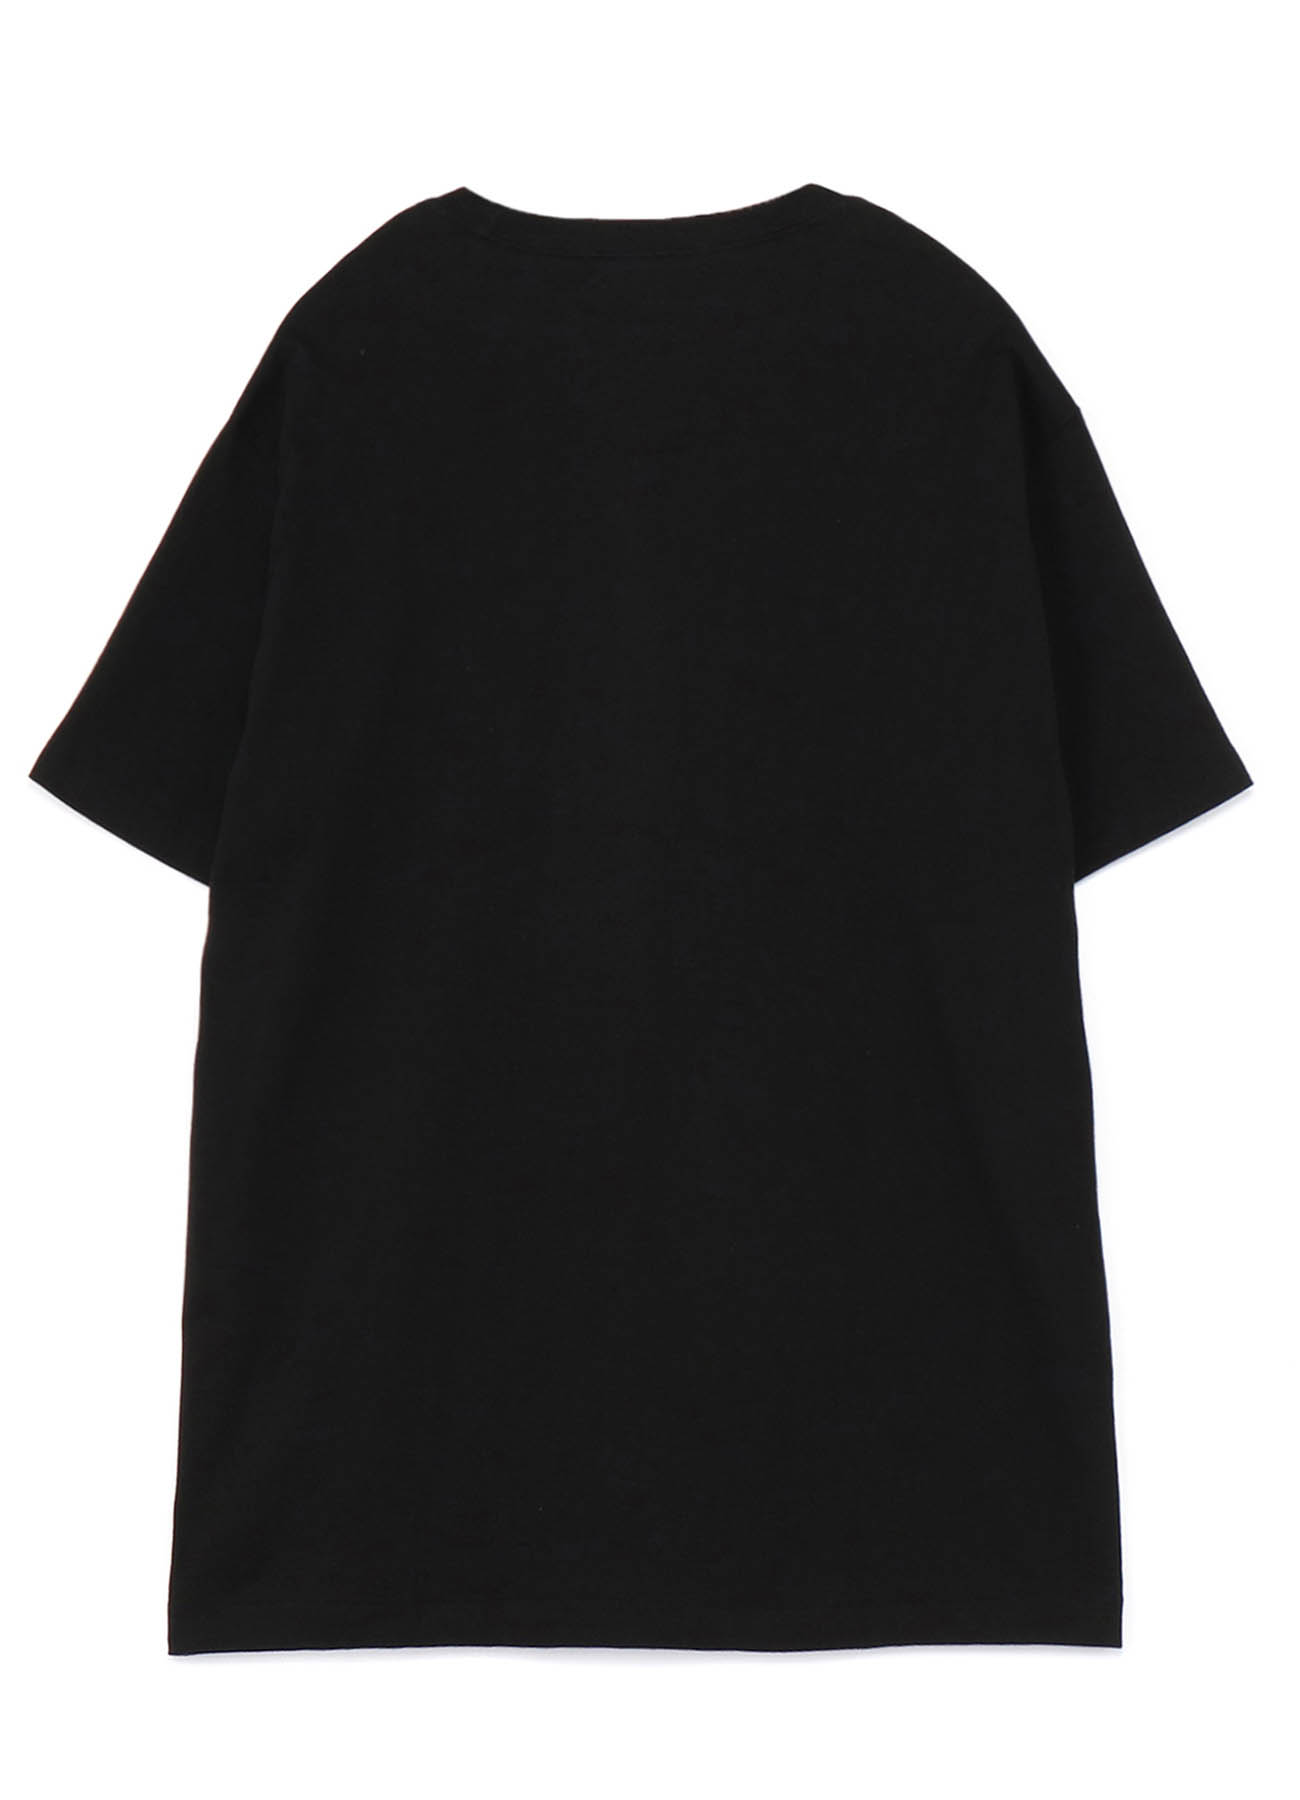 2PIECES T-SHIRTS